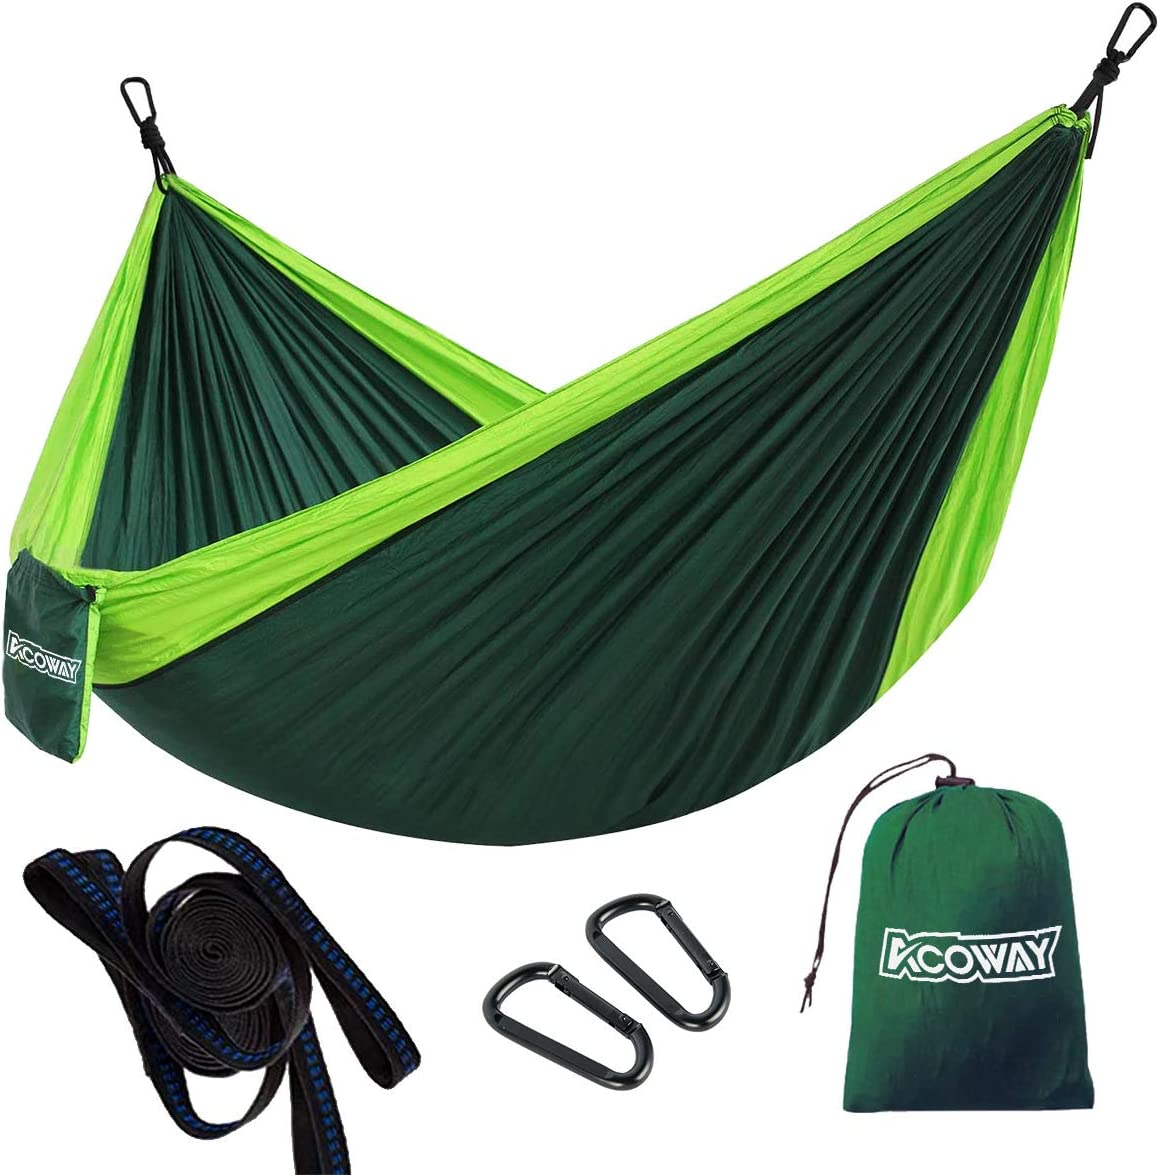 Kamileo Camping Hammock Portable Parachute Nylon Tree Hammock Durable 2 Person Hammock for Outdoor Travel Hiking Backpacking Camping Garden Beach Yard 500lbs Capacity Single Double Hammock